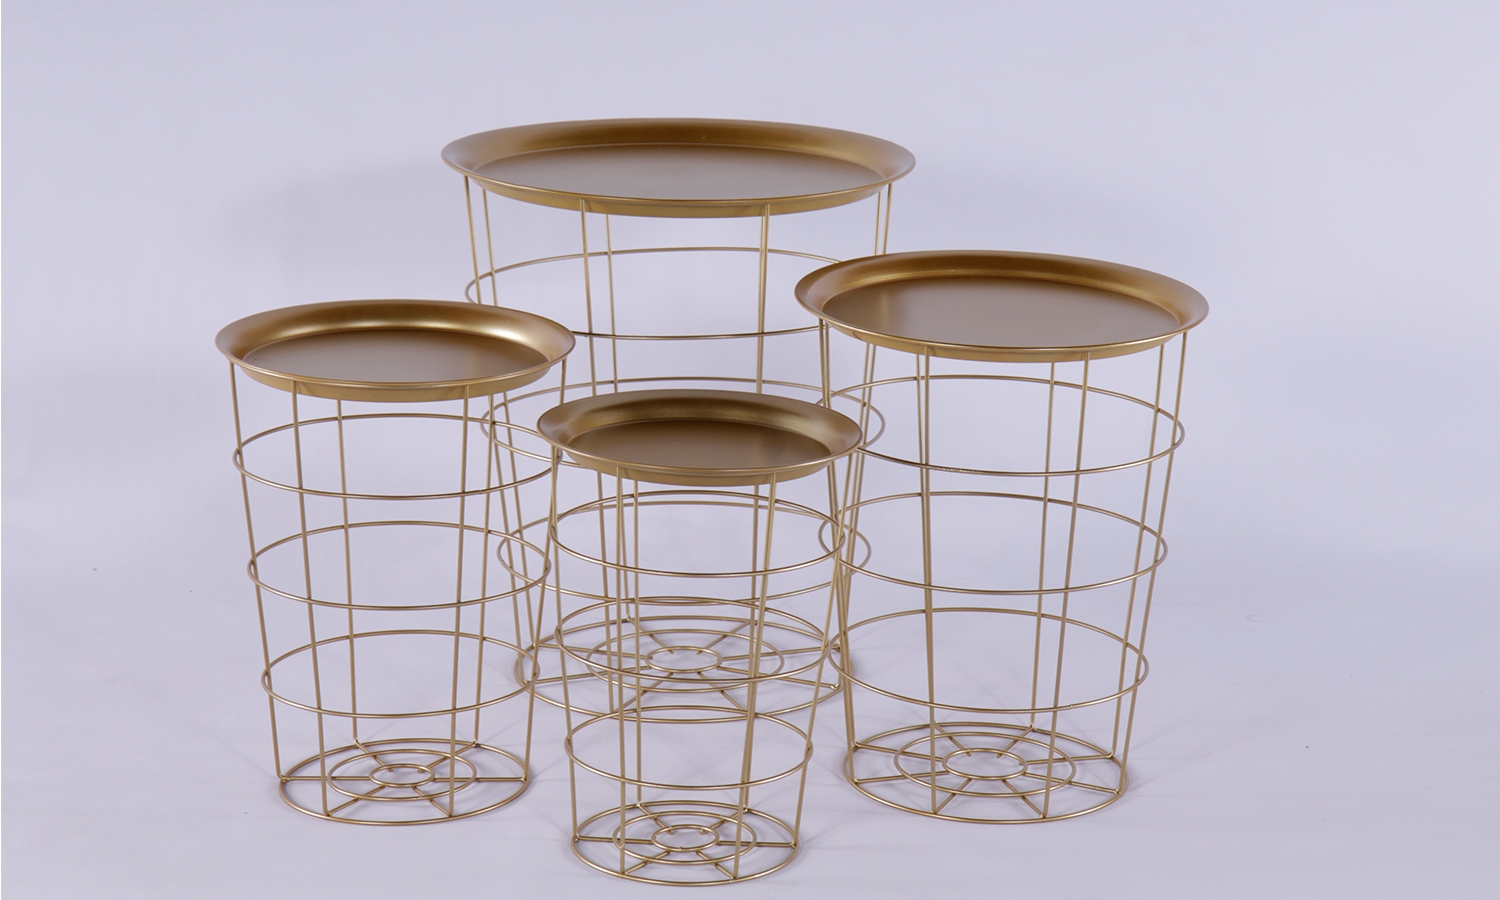 Urban Deco Gold Metal Set of 4 Tray Tables